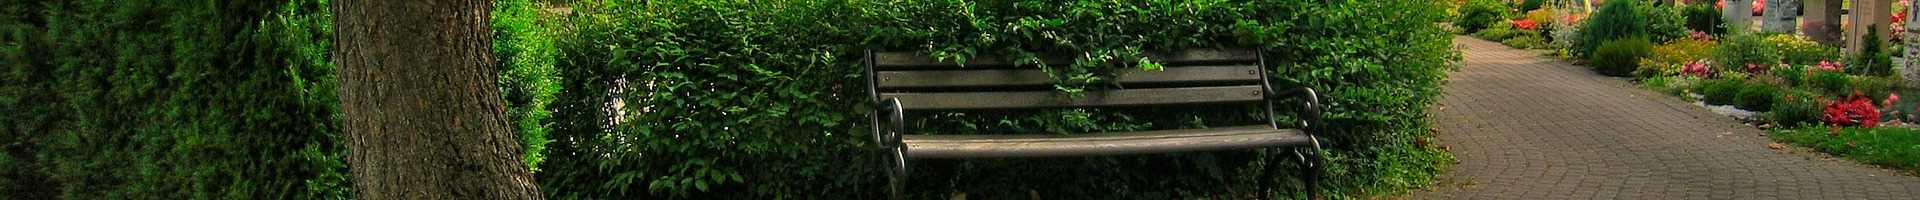 Bench at a cemetery